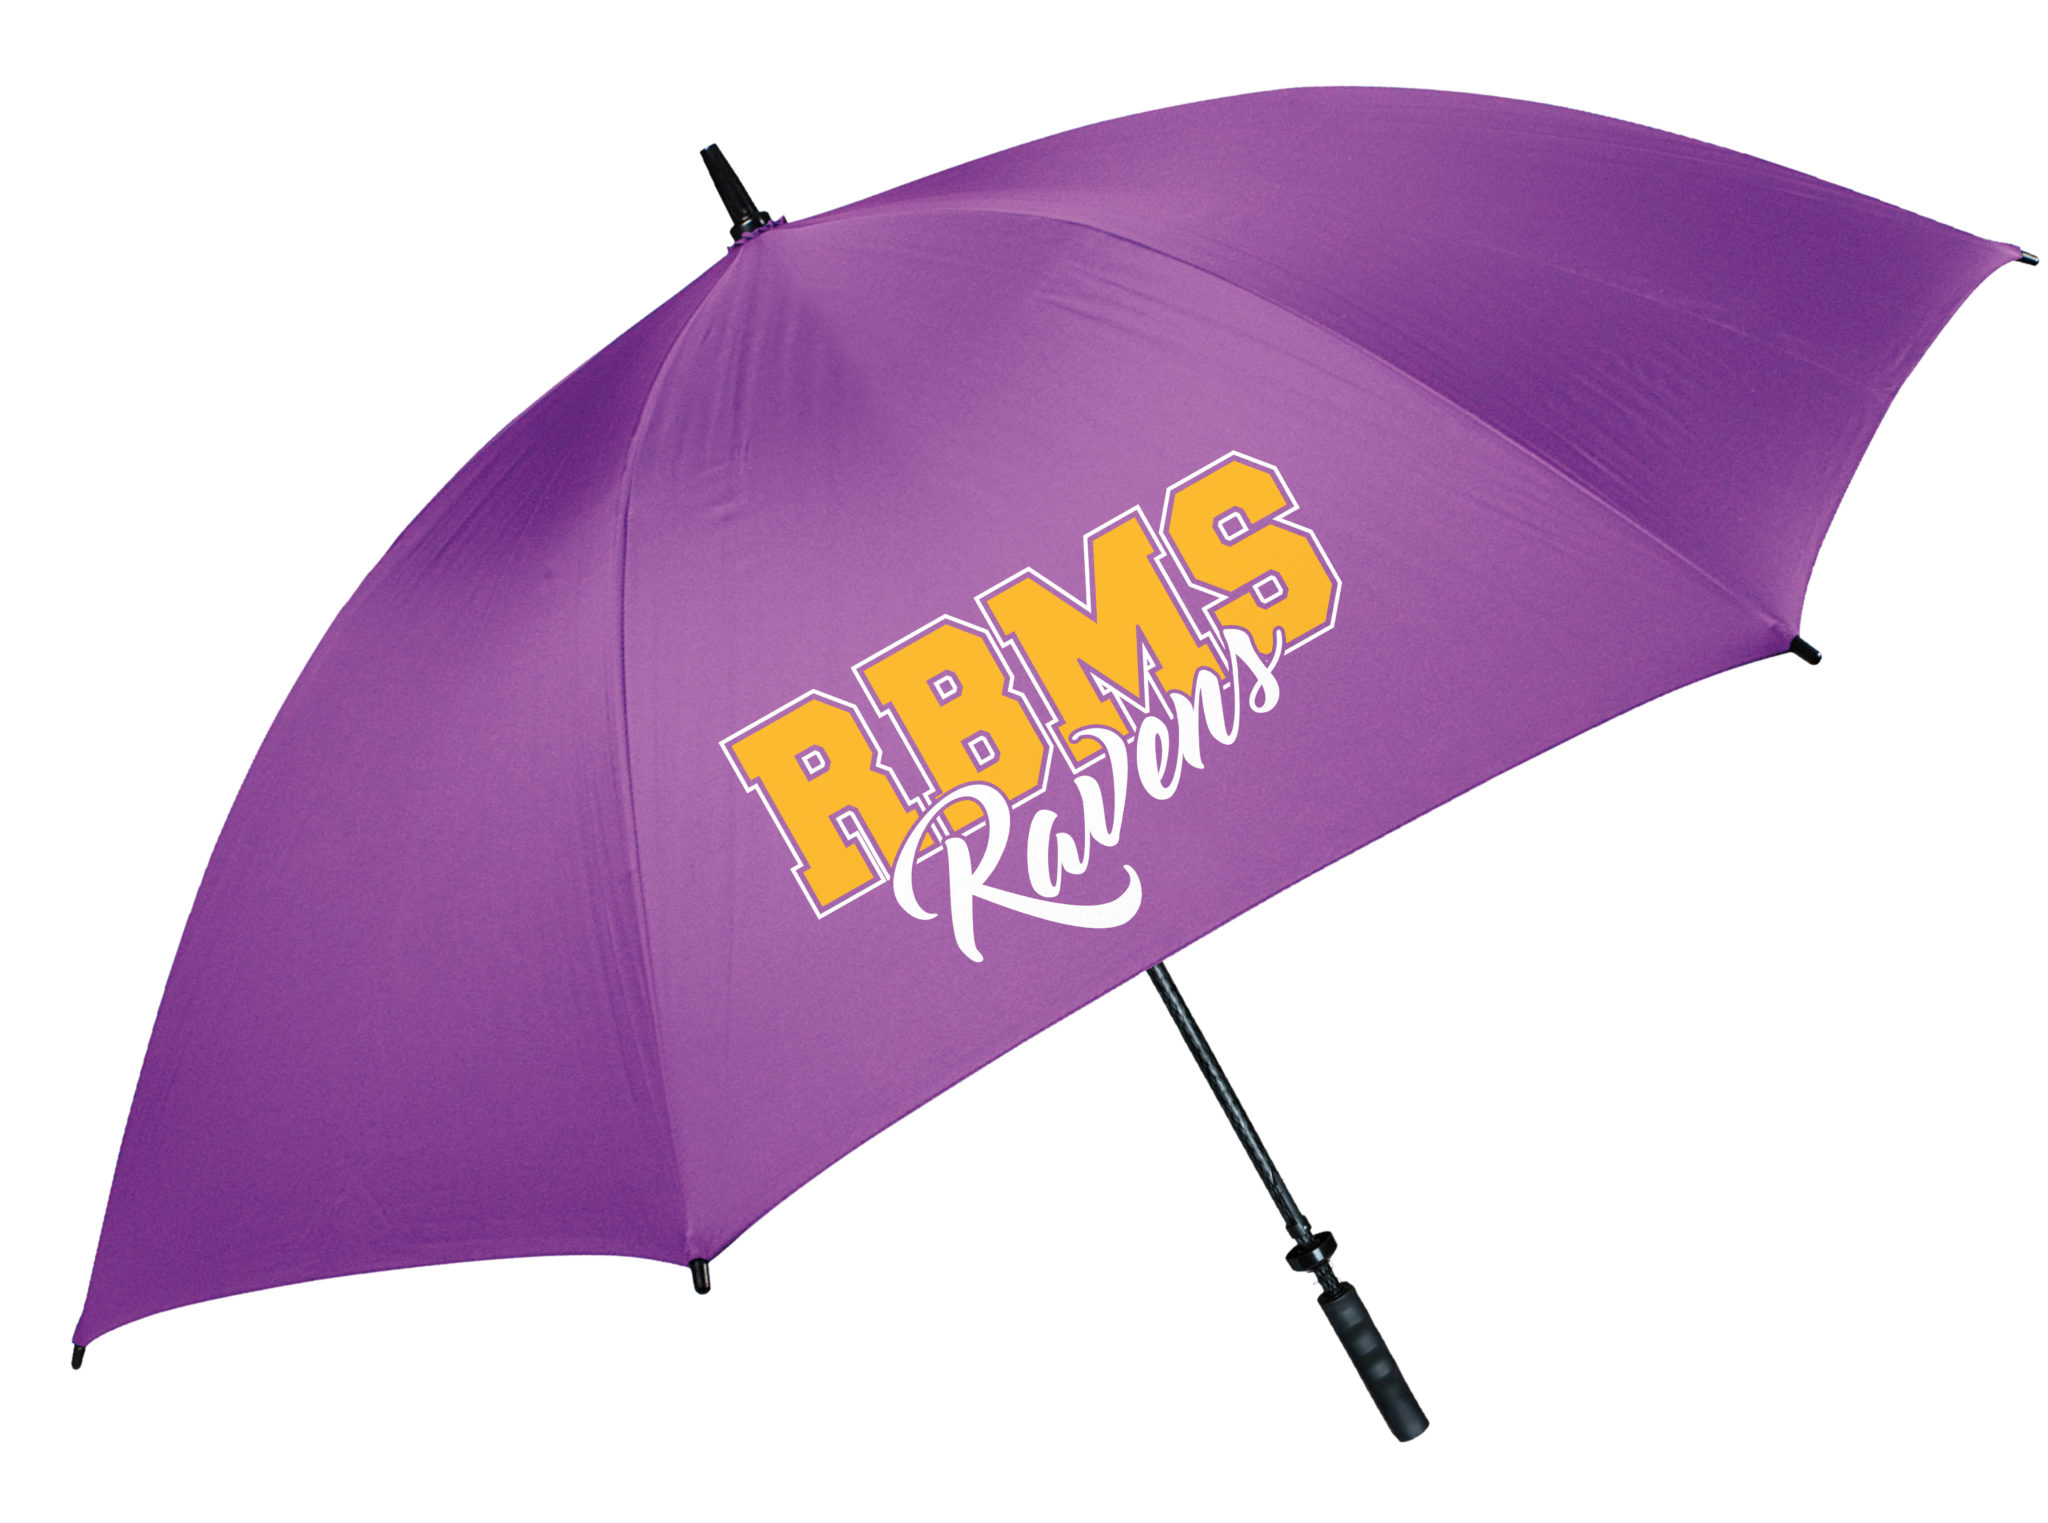 South-riding-va-custom-branded-product-umbrella